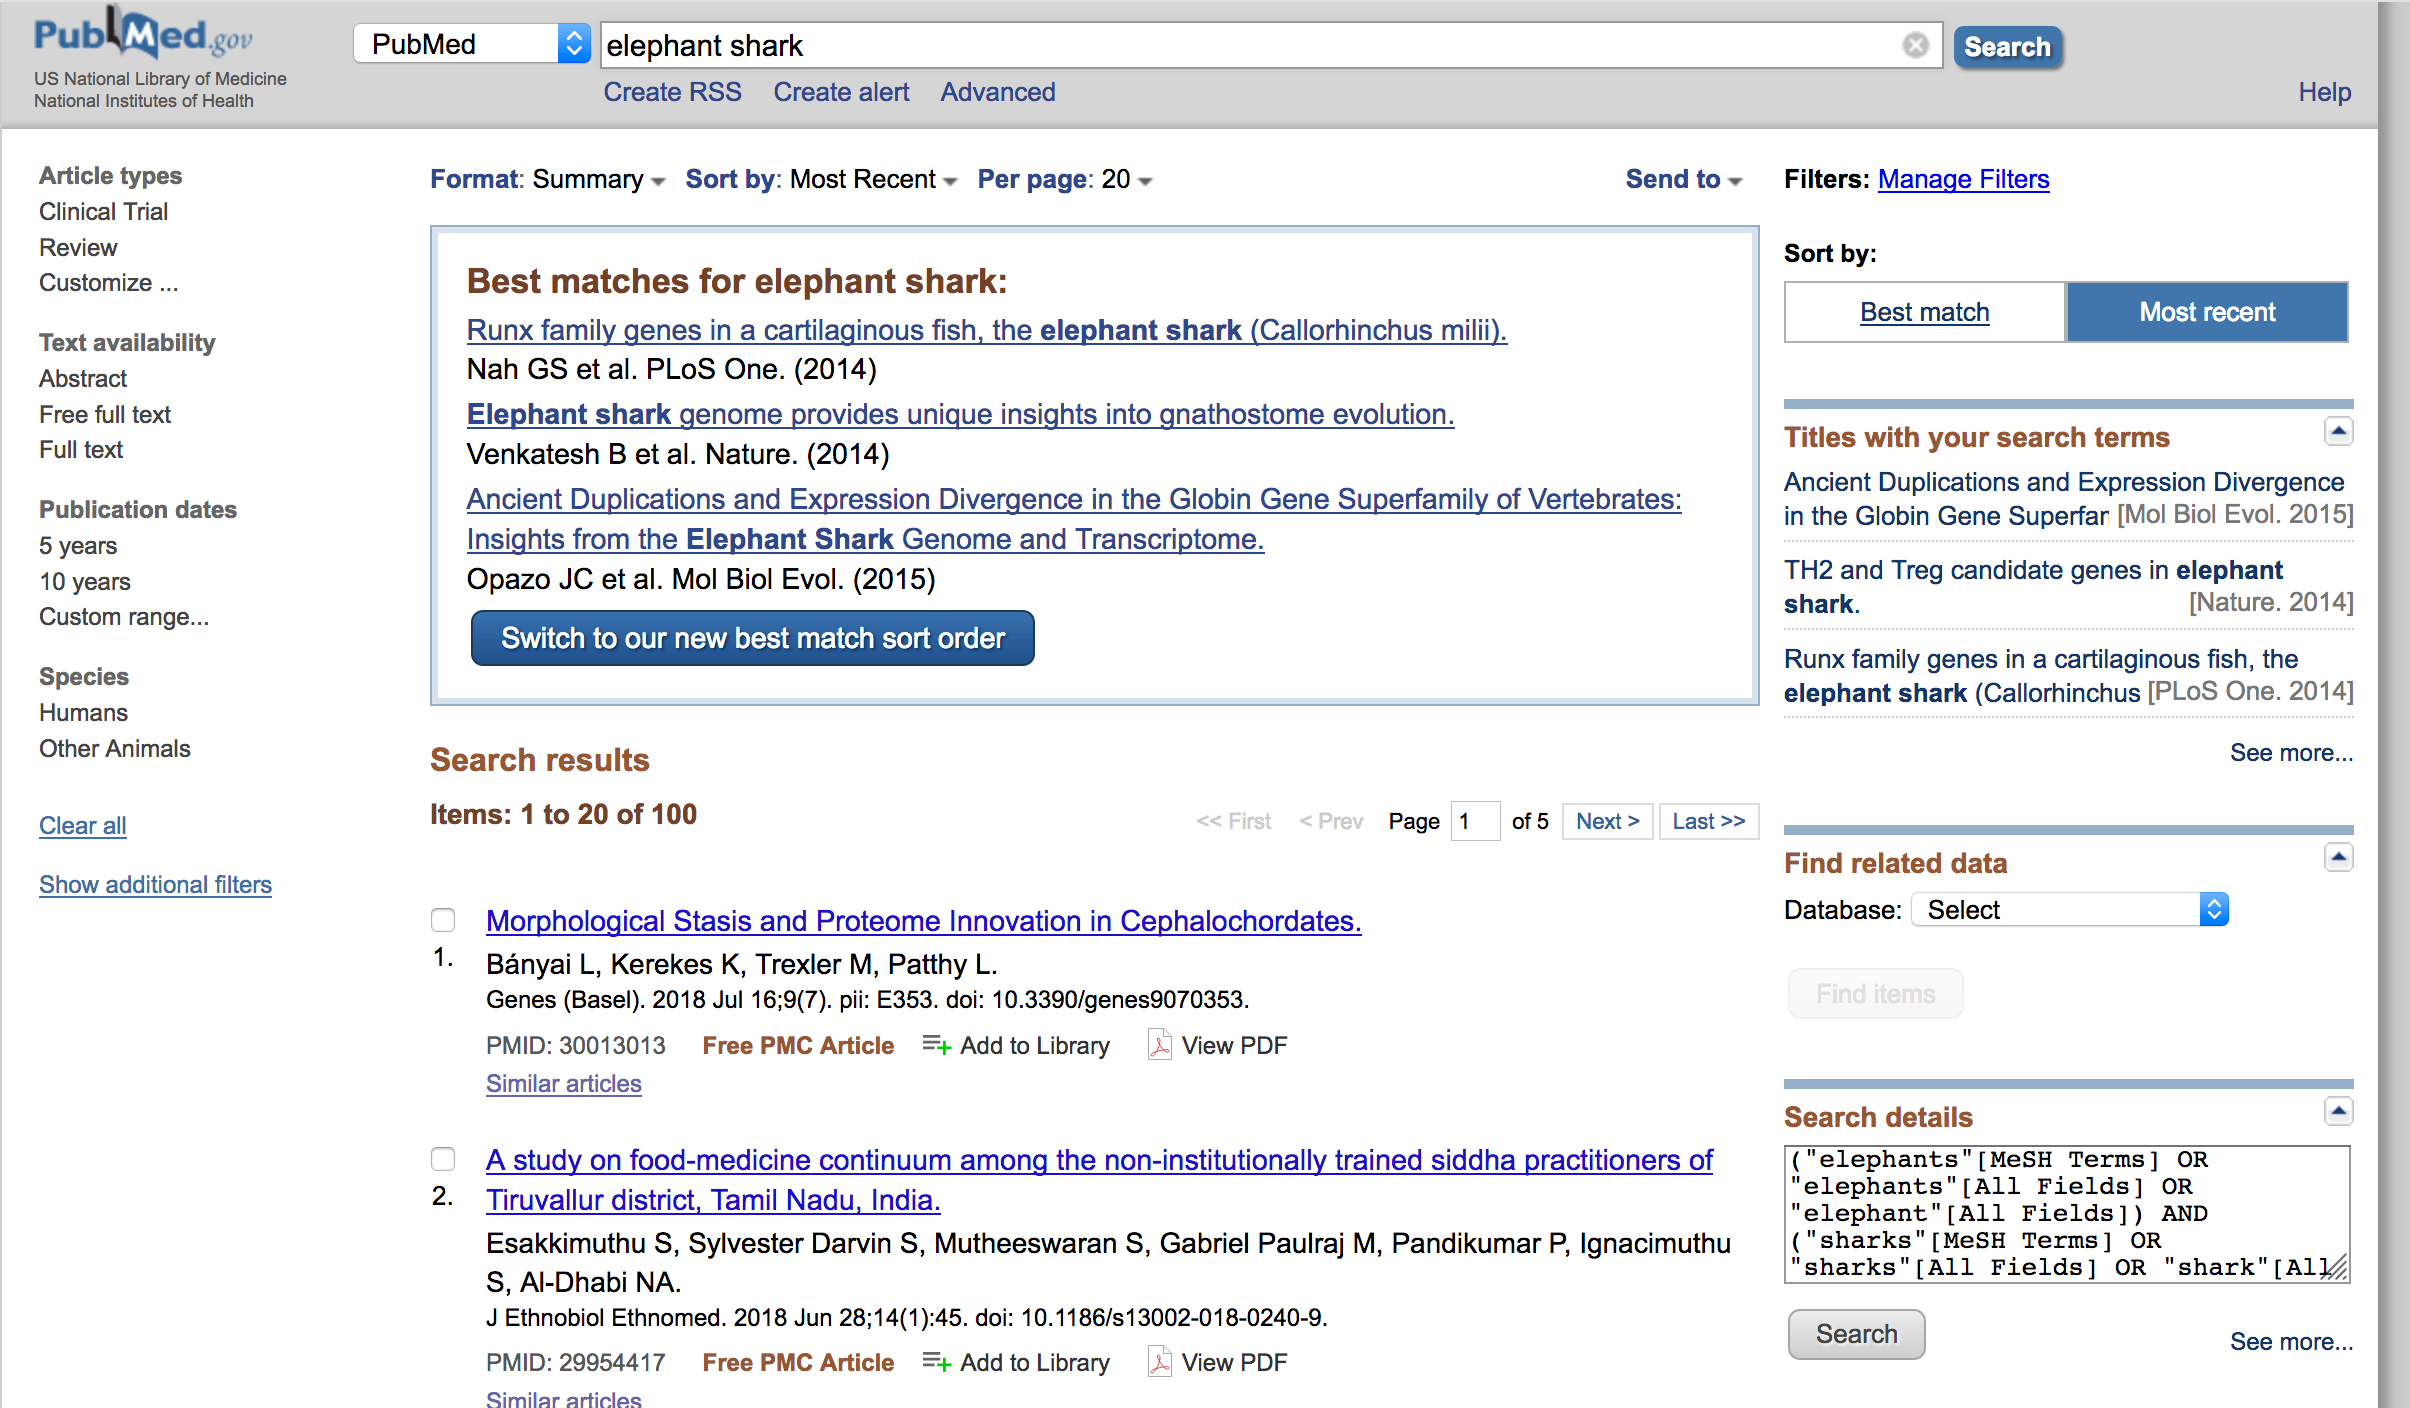 Screenshot of the ReadCube Papers Browser Extension on Firefox via Pubmed